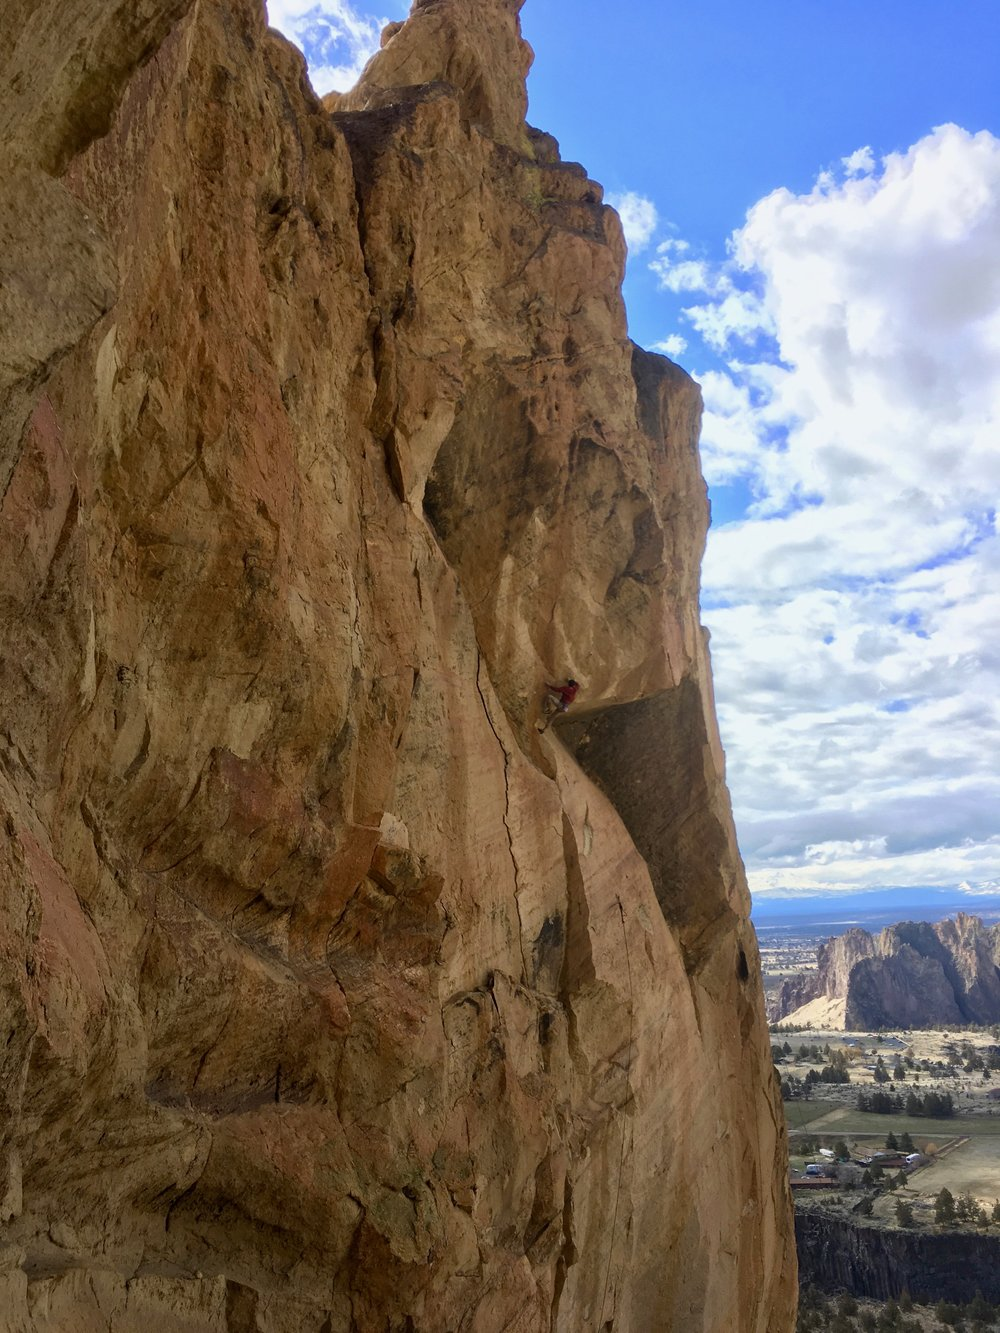 a tale of two climbing areas—recent route development at the monument and marsupials - APRIL 14, 2019